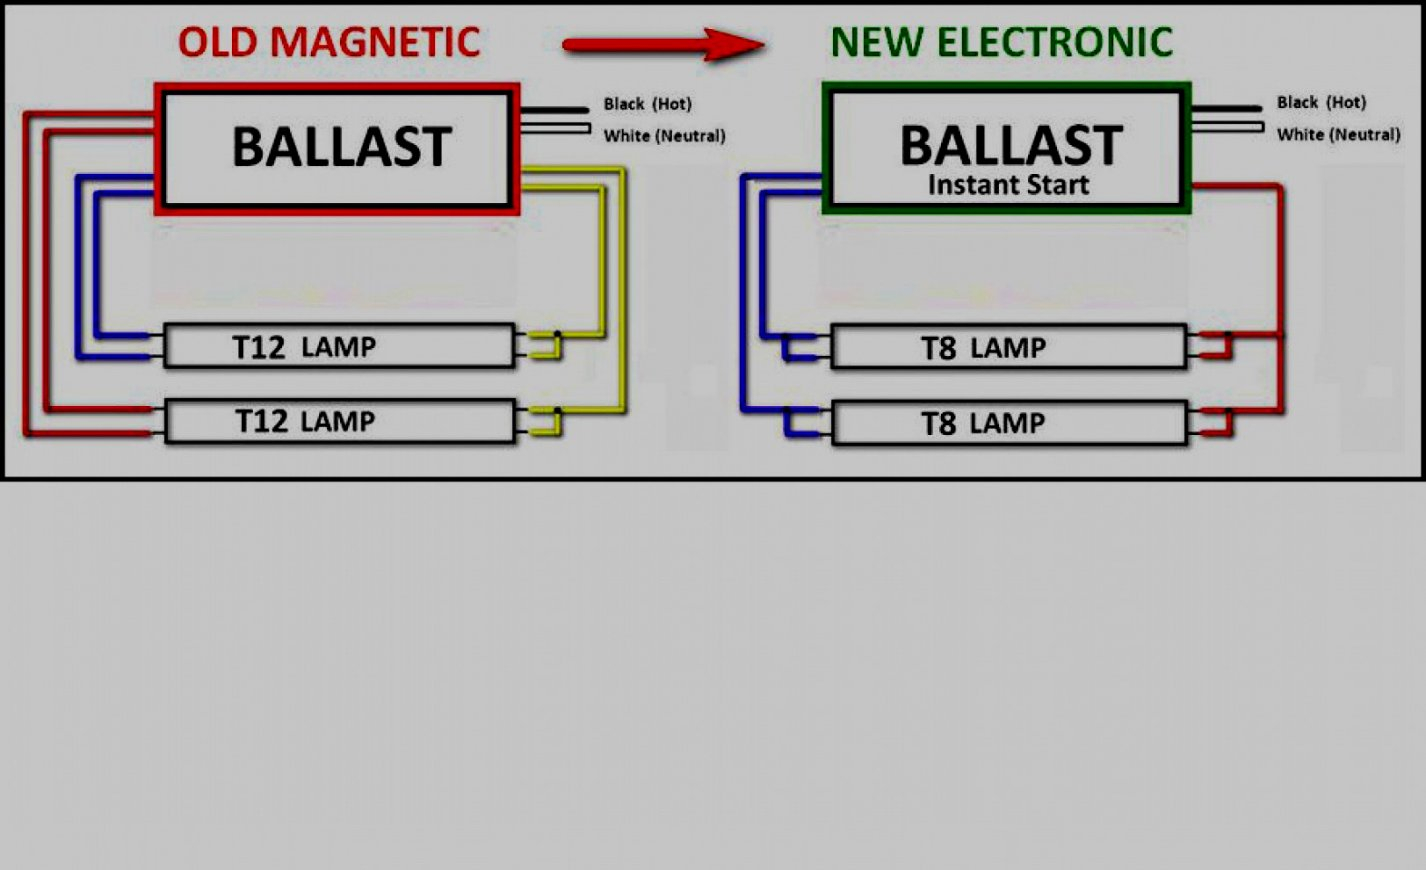 [DIAGRAM_38IU]  2l T12 Ballast Wiring Diagram - Single Overhead Cam Engine Diagram for Wiring  Diagram Schematics | T12 Magnetic Ballast Wiring Diagram |  | Wiring Diagram Schematics